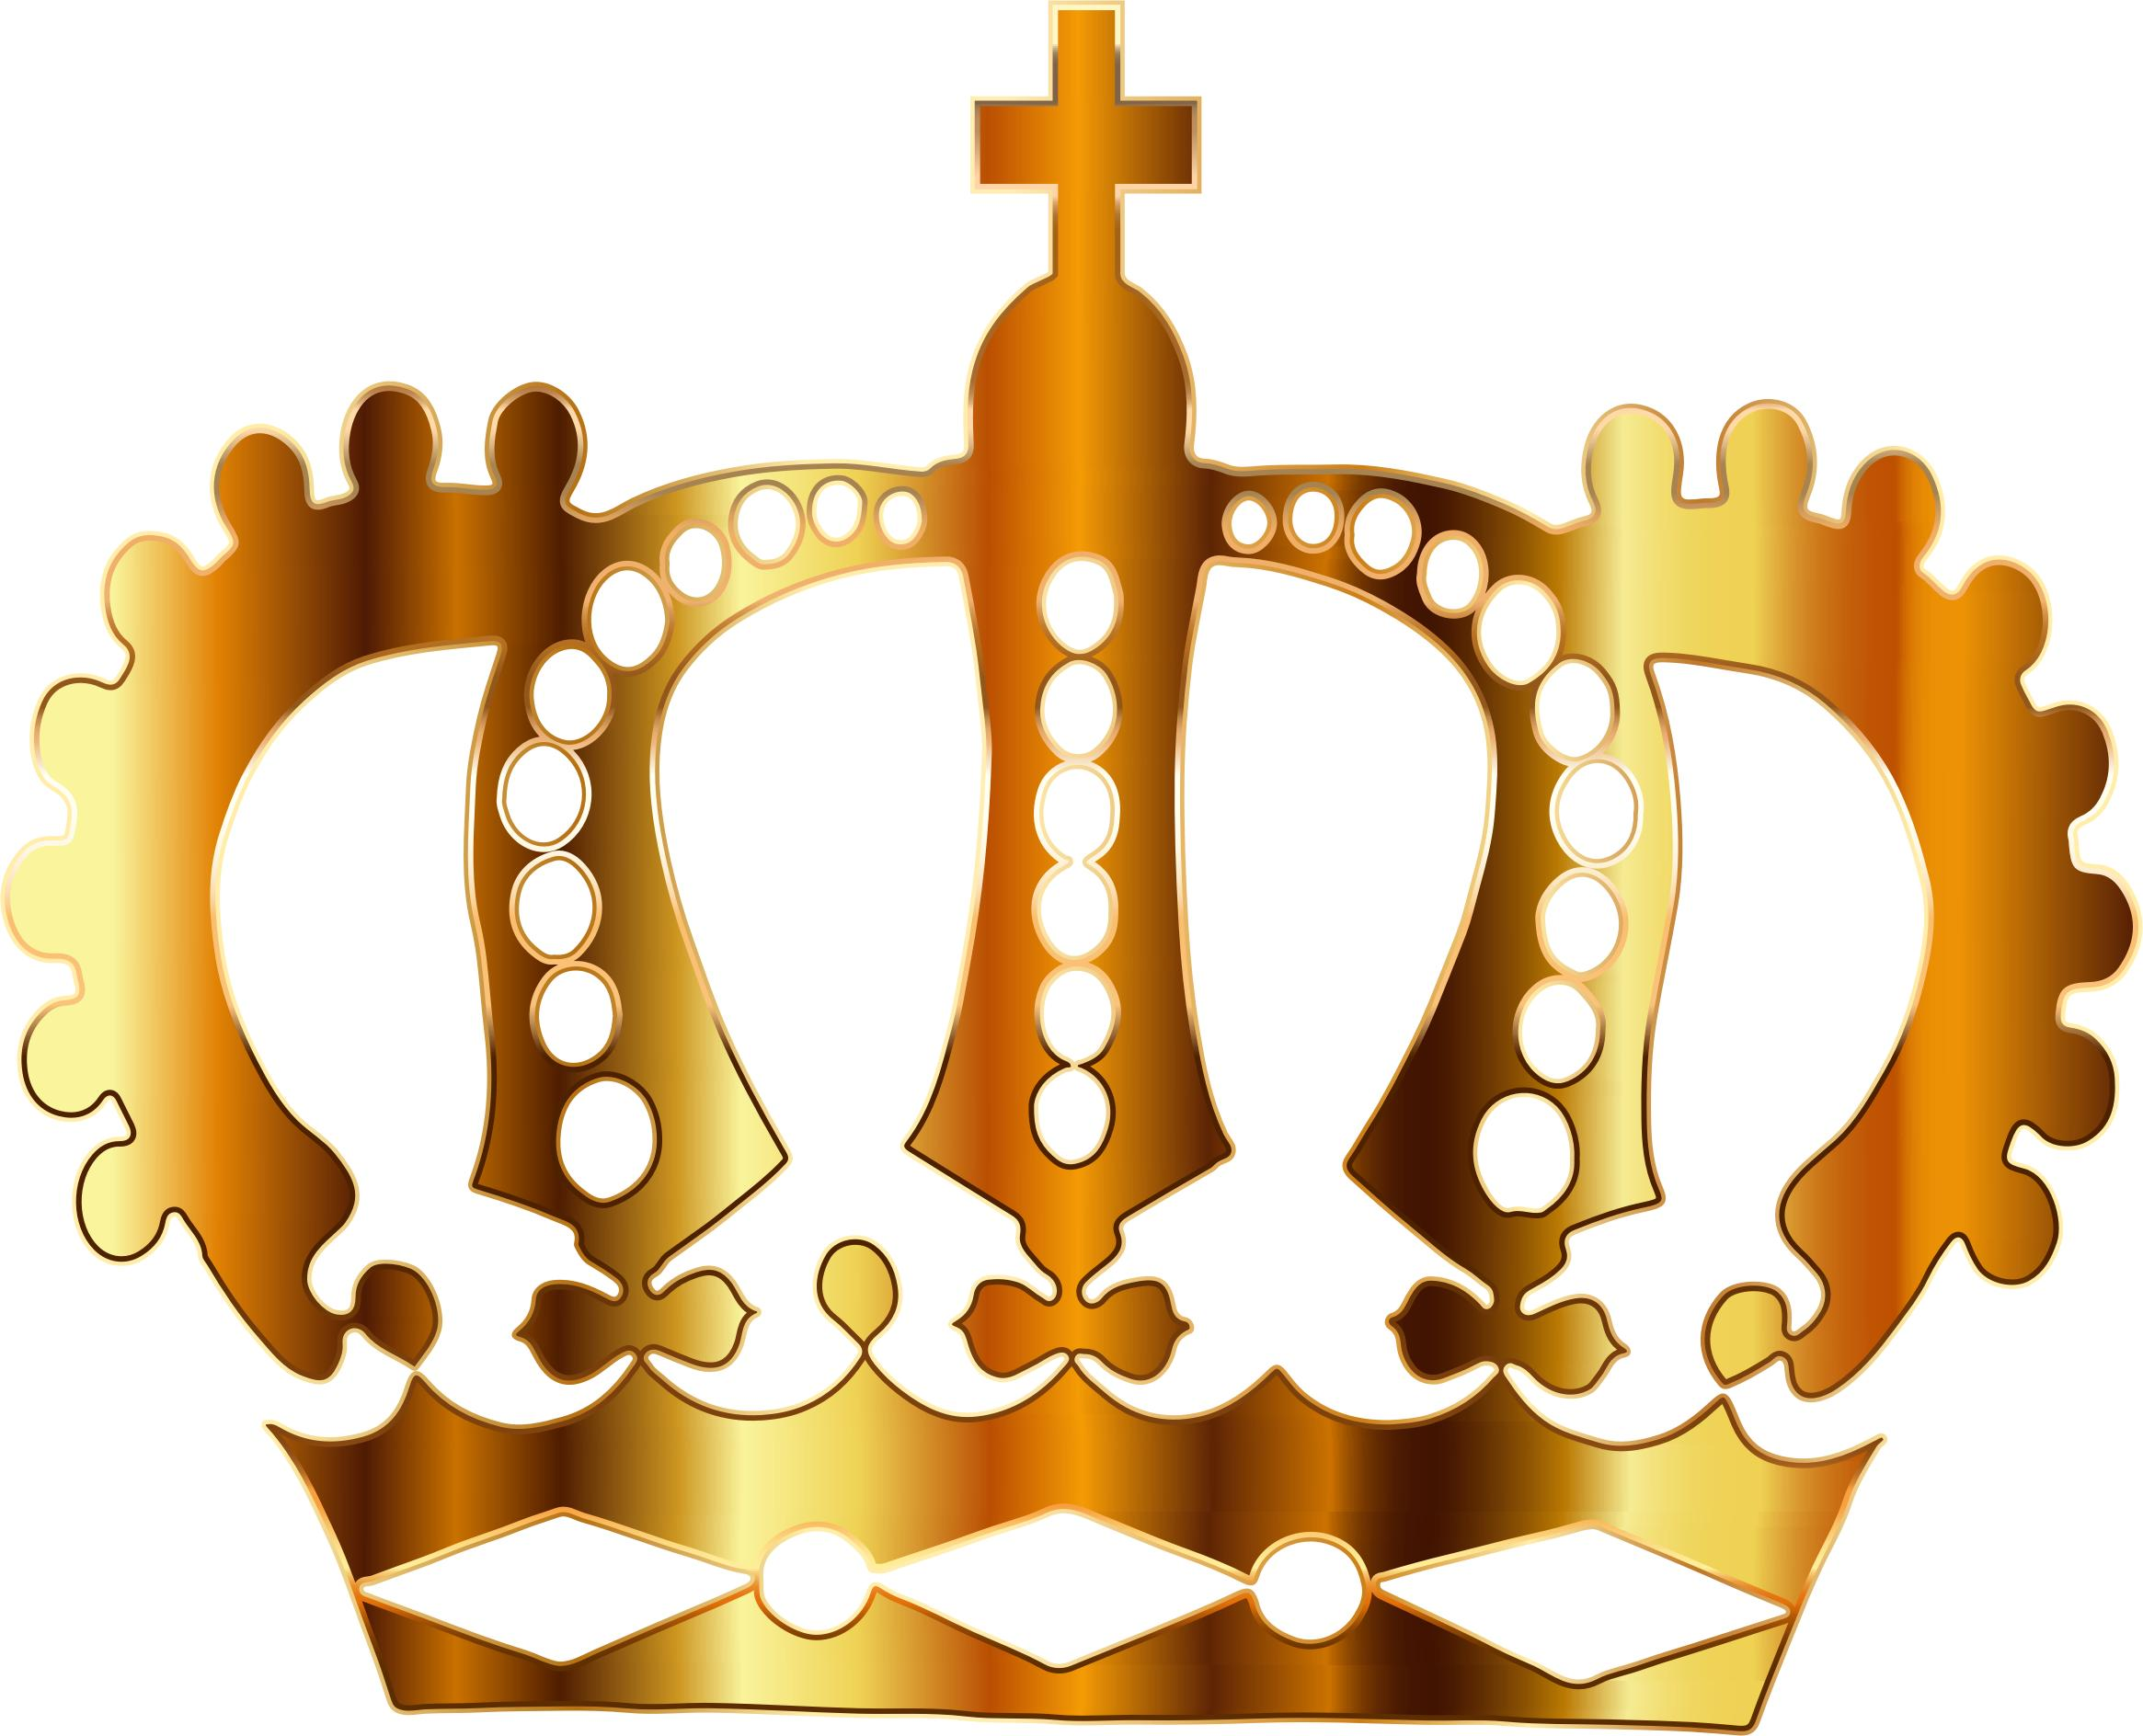 Gold Royal Crown Silhouette No Background Icons PNG.